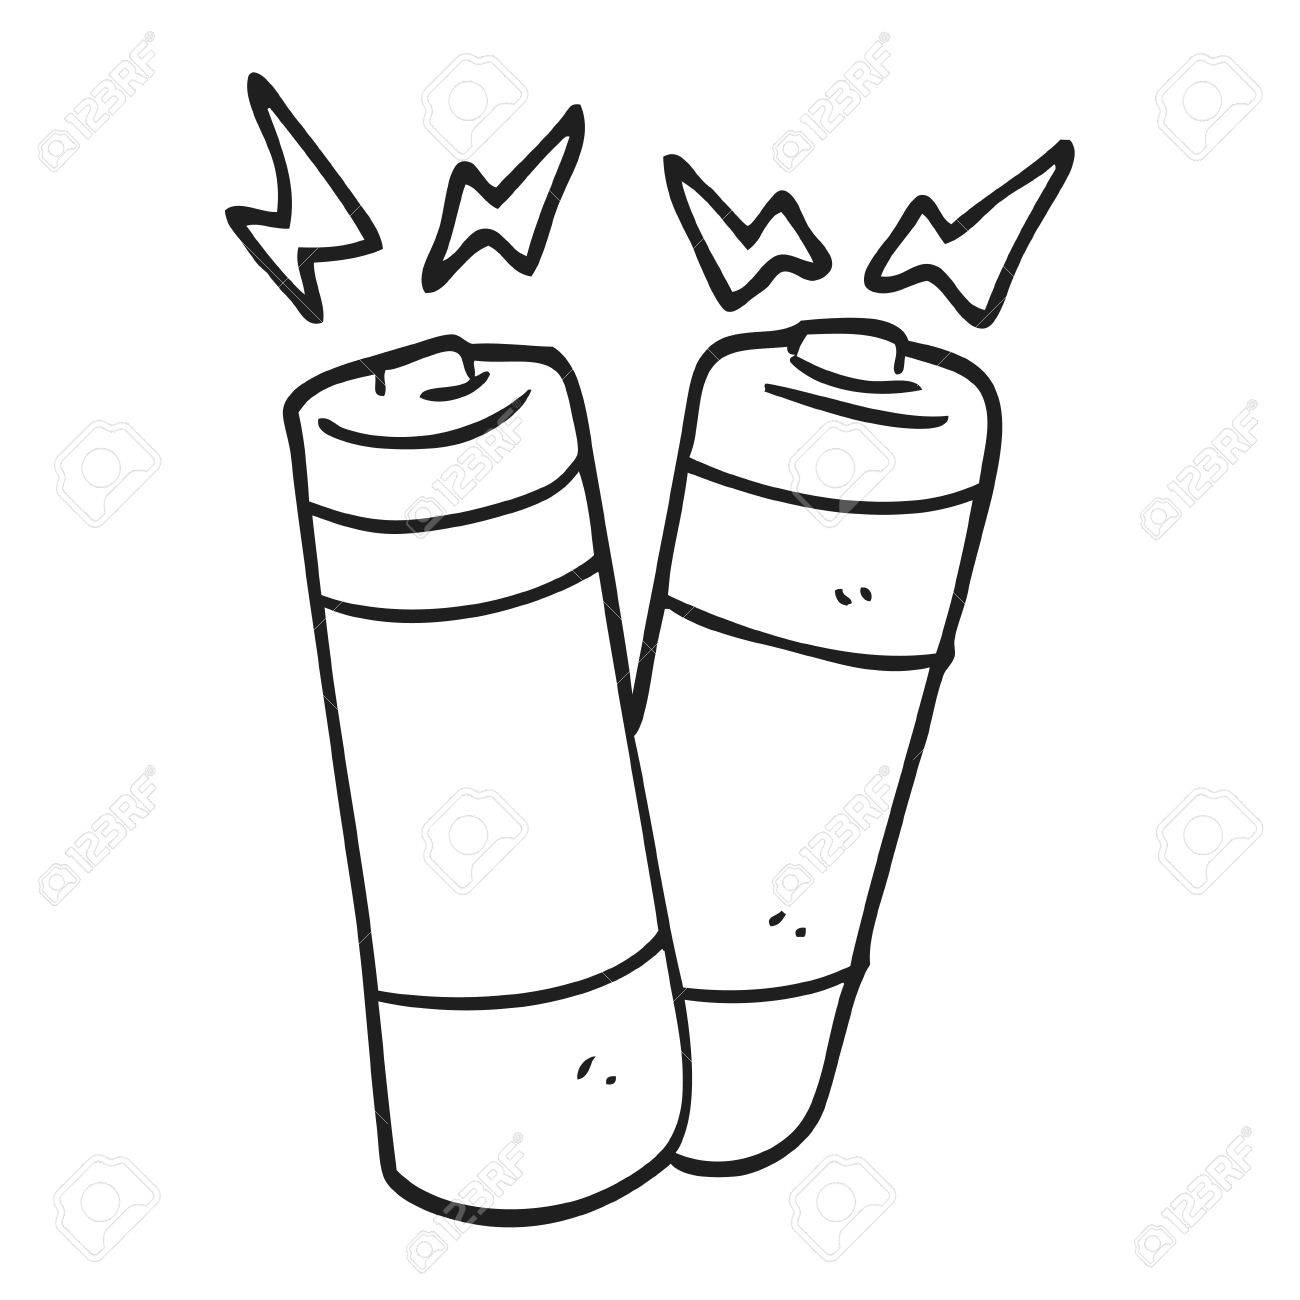 1300x1300 Freehand Drawn Black And White Cartoon Batteries Royalty Free